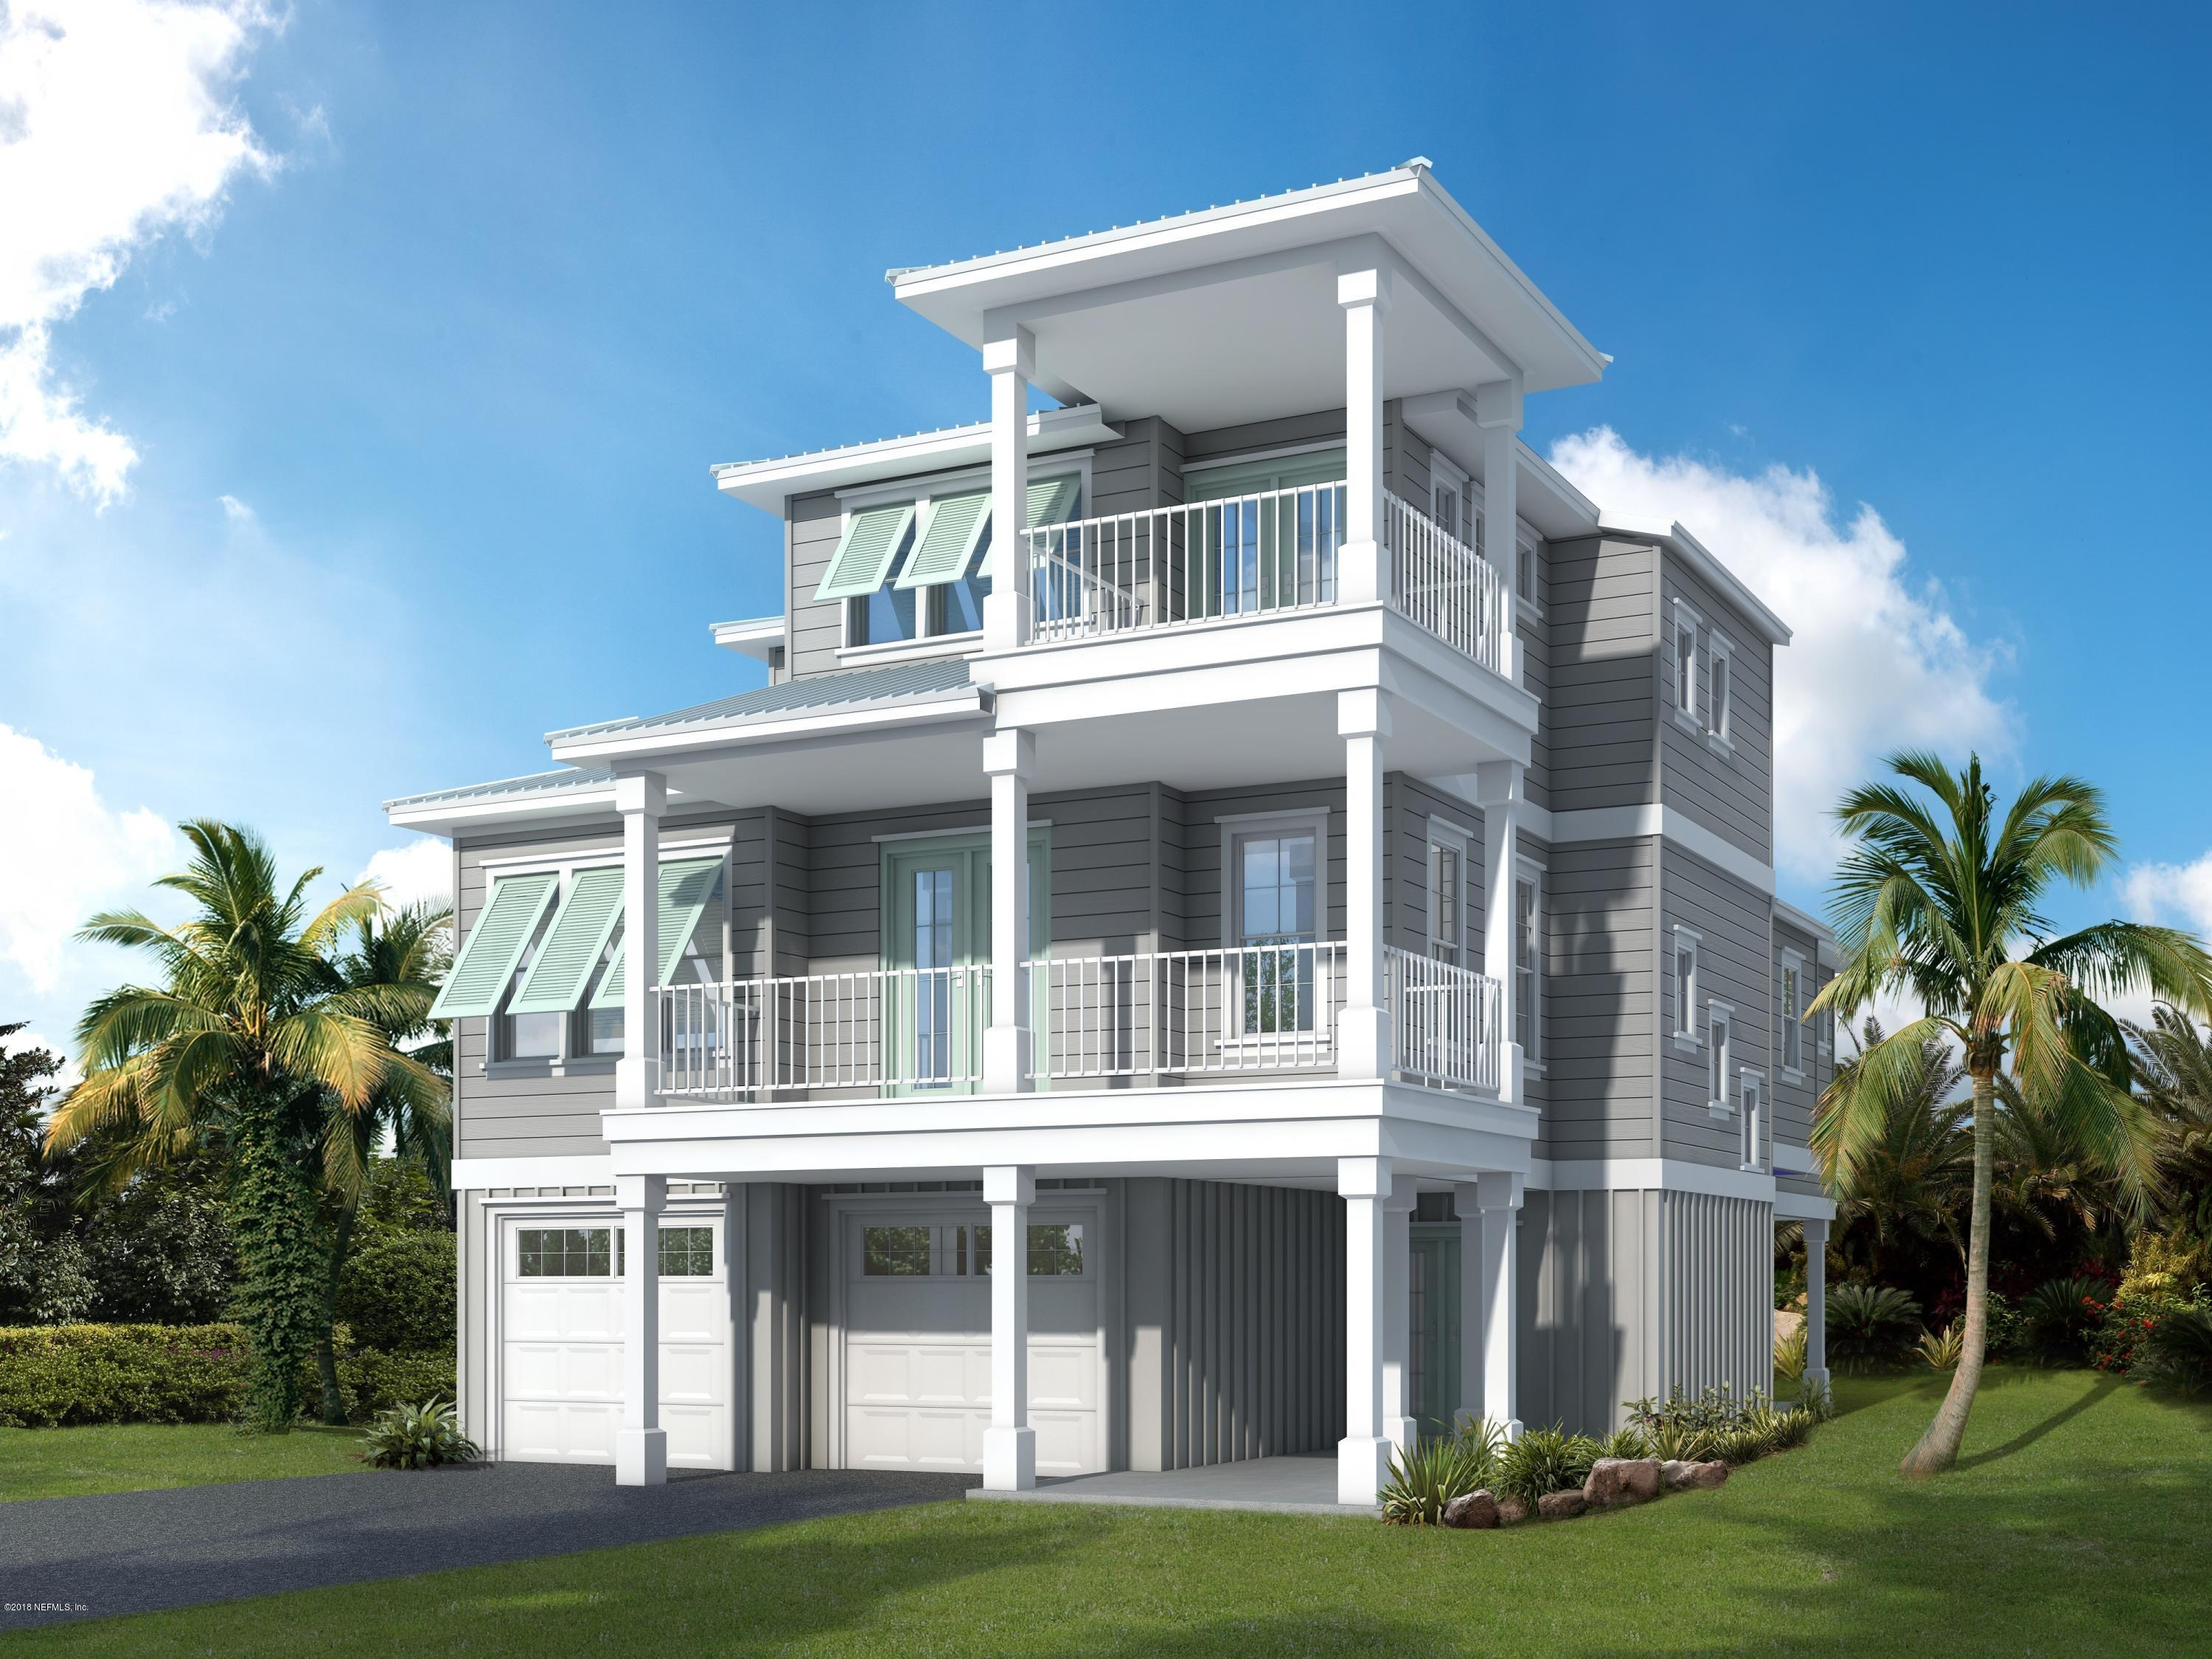 139  37TH AVE S, one of homes for sale in Jacksonville Beach